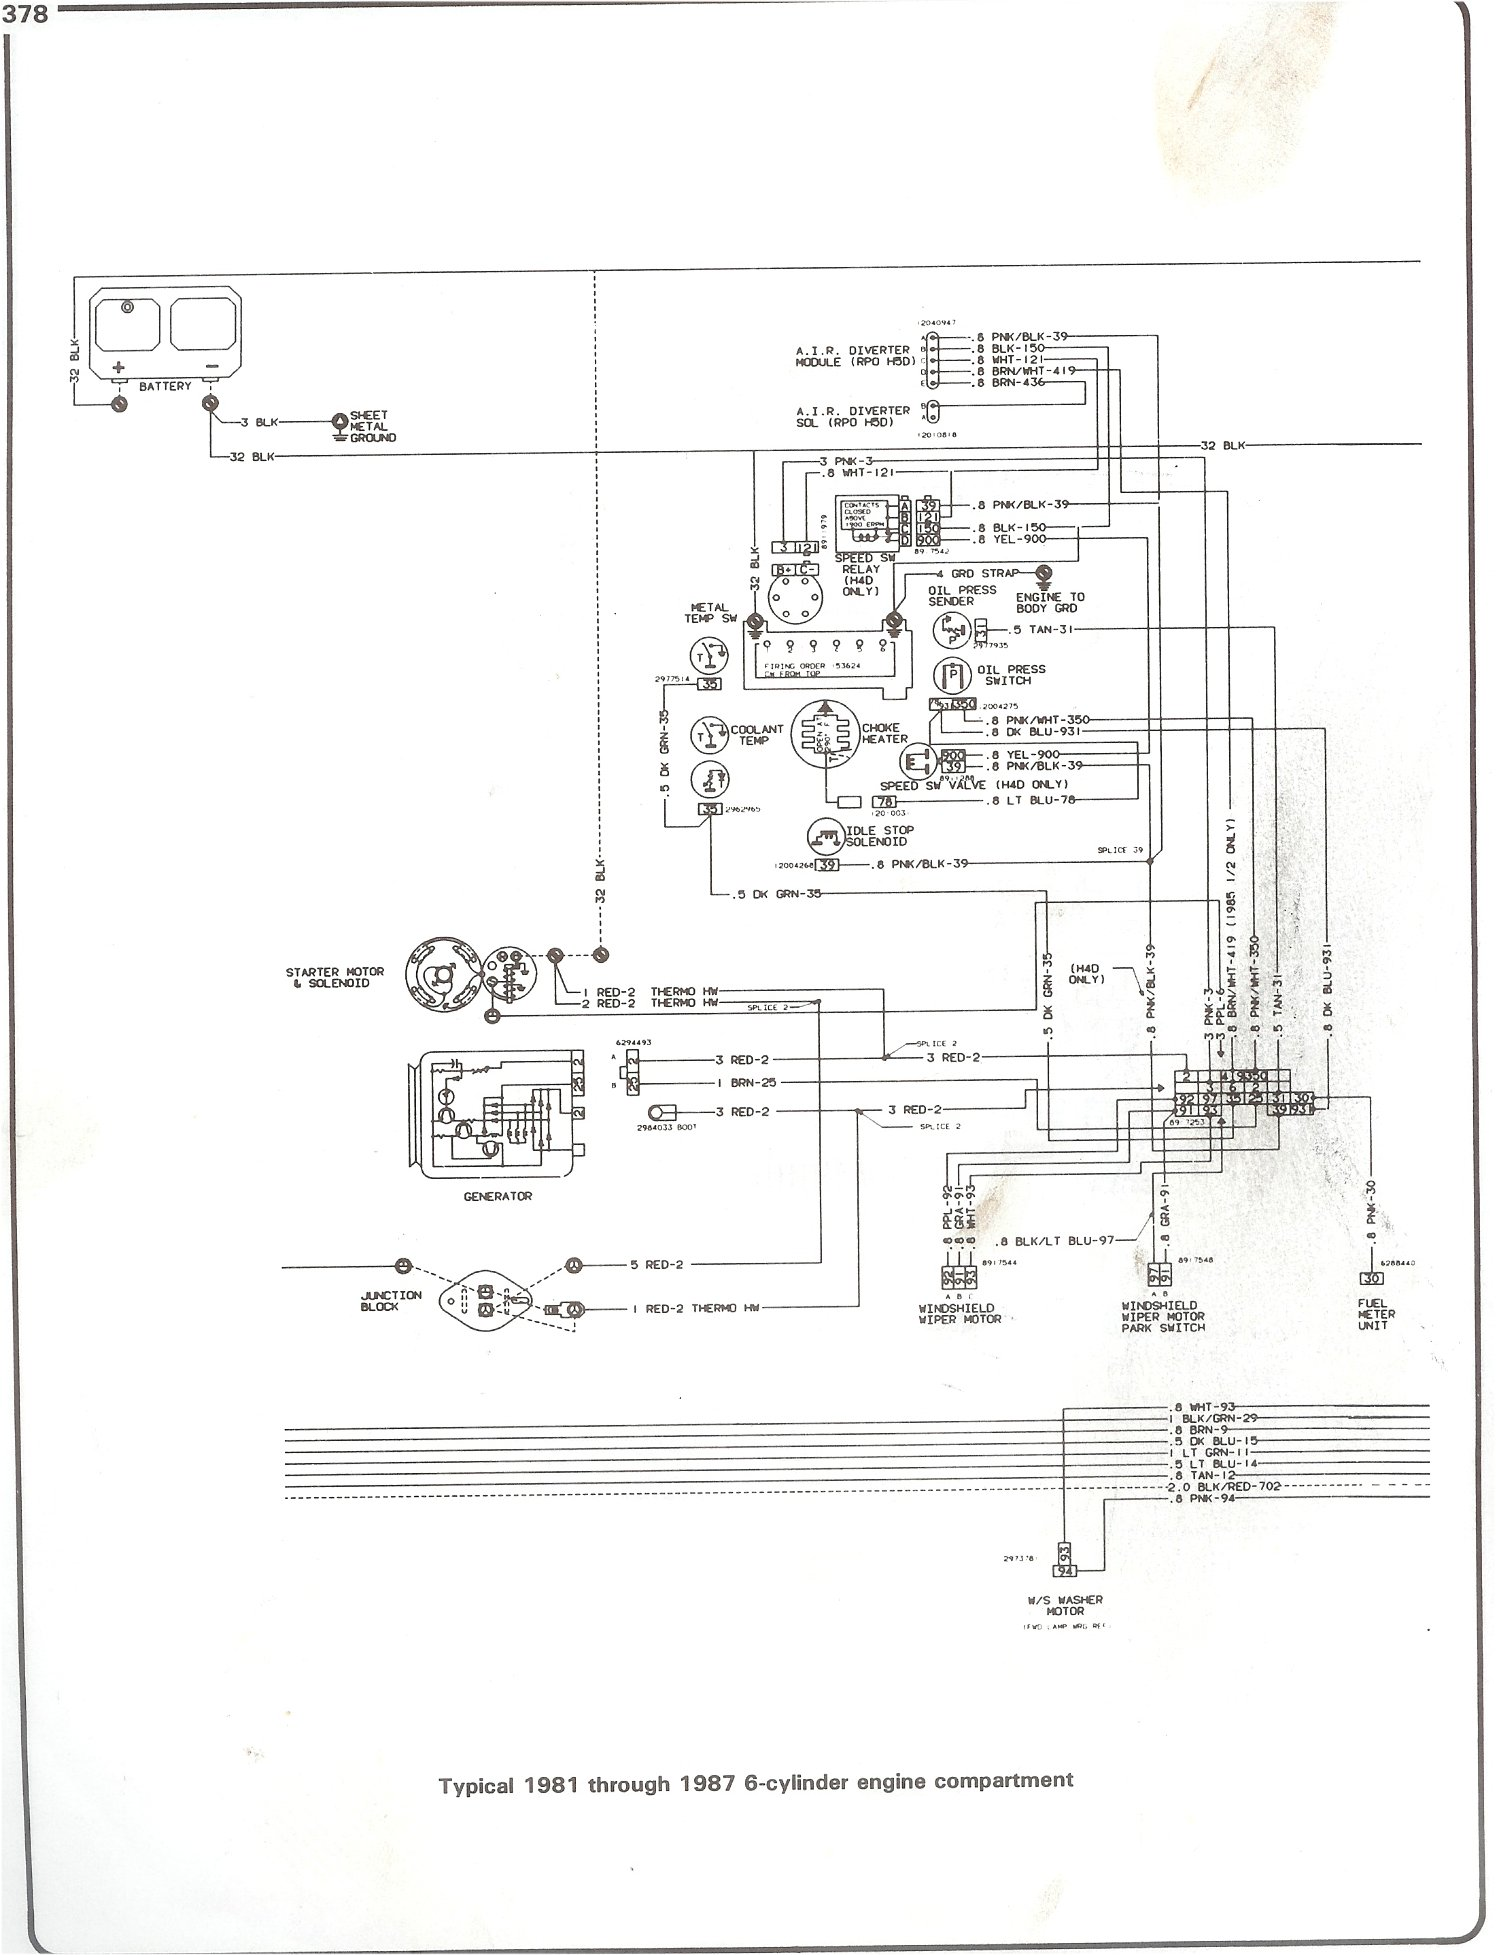 [ZE_7913] 1973 Chevy Nova Wiring Diagram Wiring Diagram